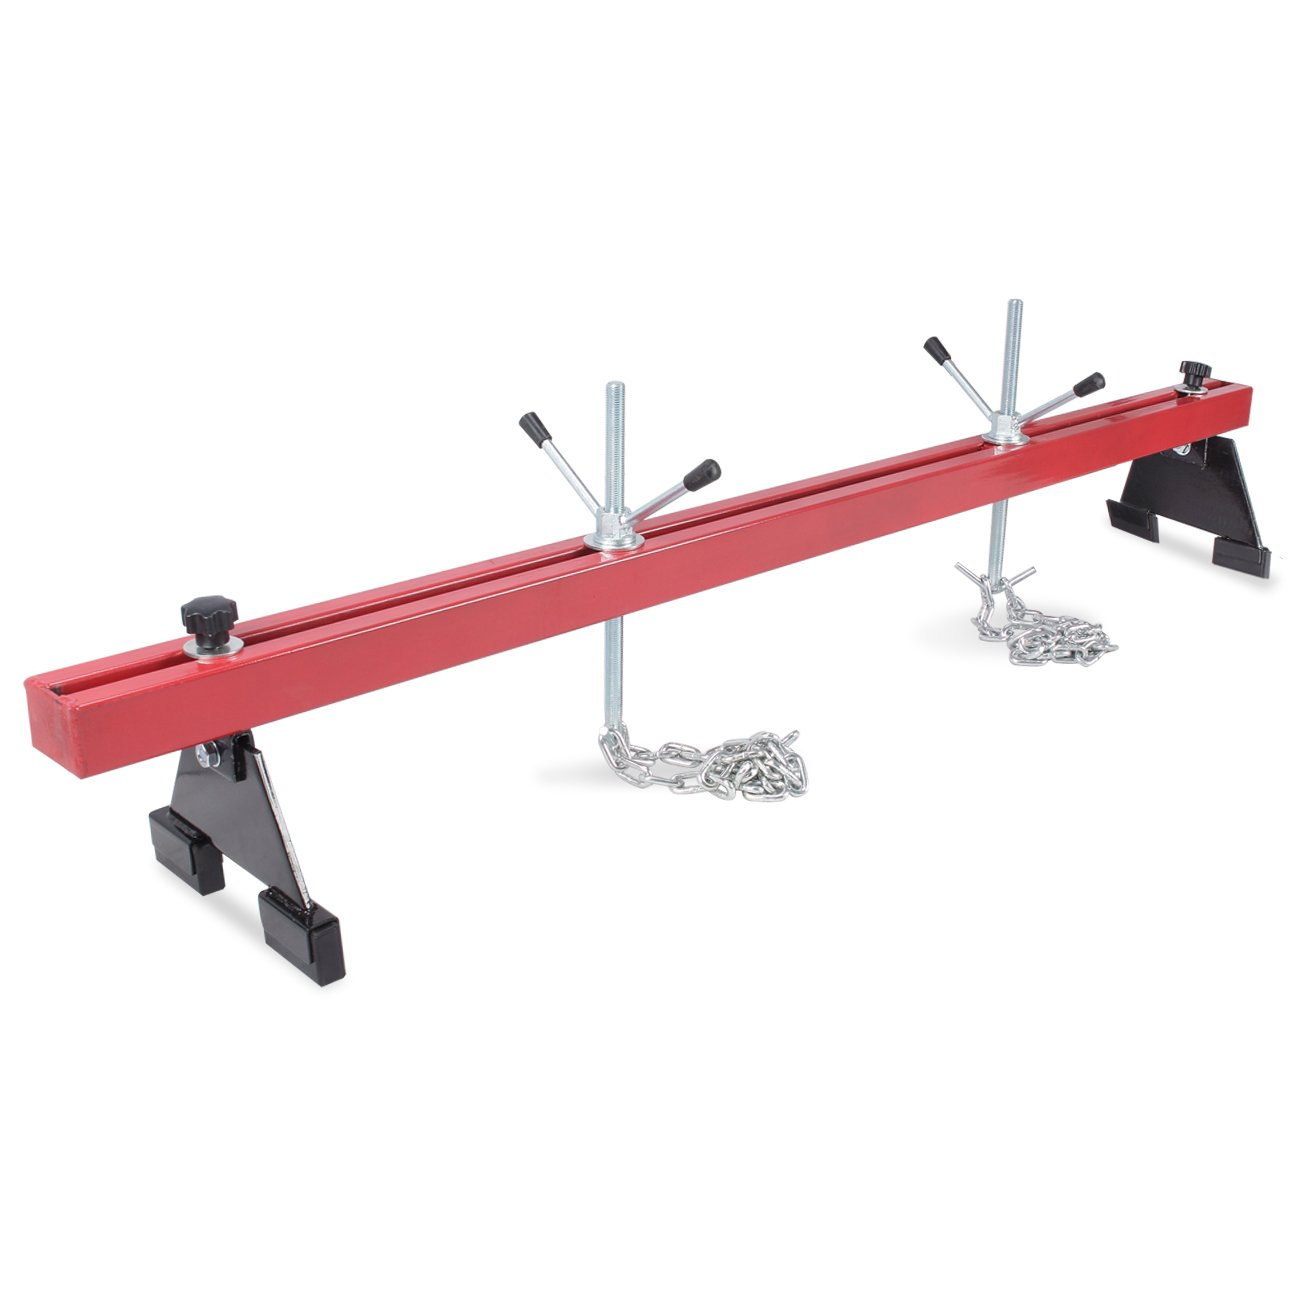 Arksen 1100lbs Capacity Engine Load Leveler Adjustable Support Bar for Transmission Repair w/ Dual Hook, Red